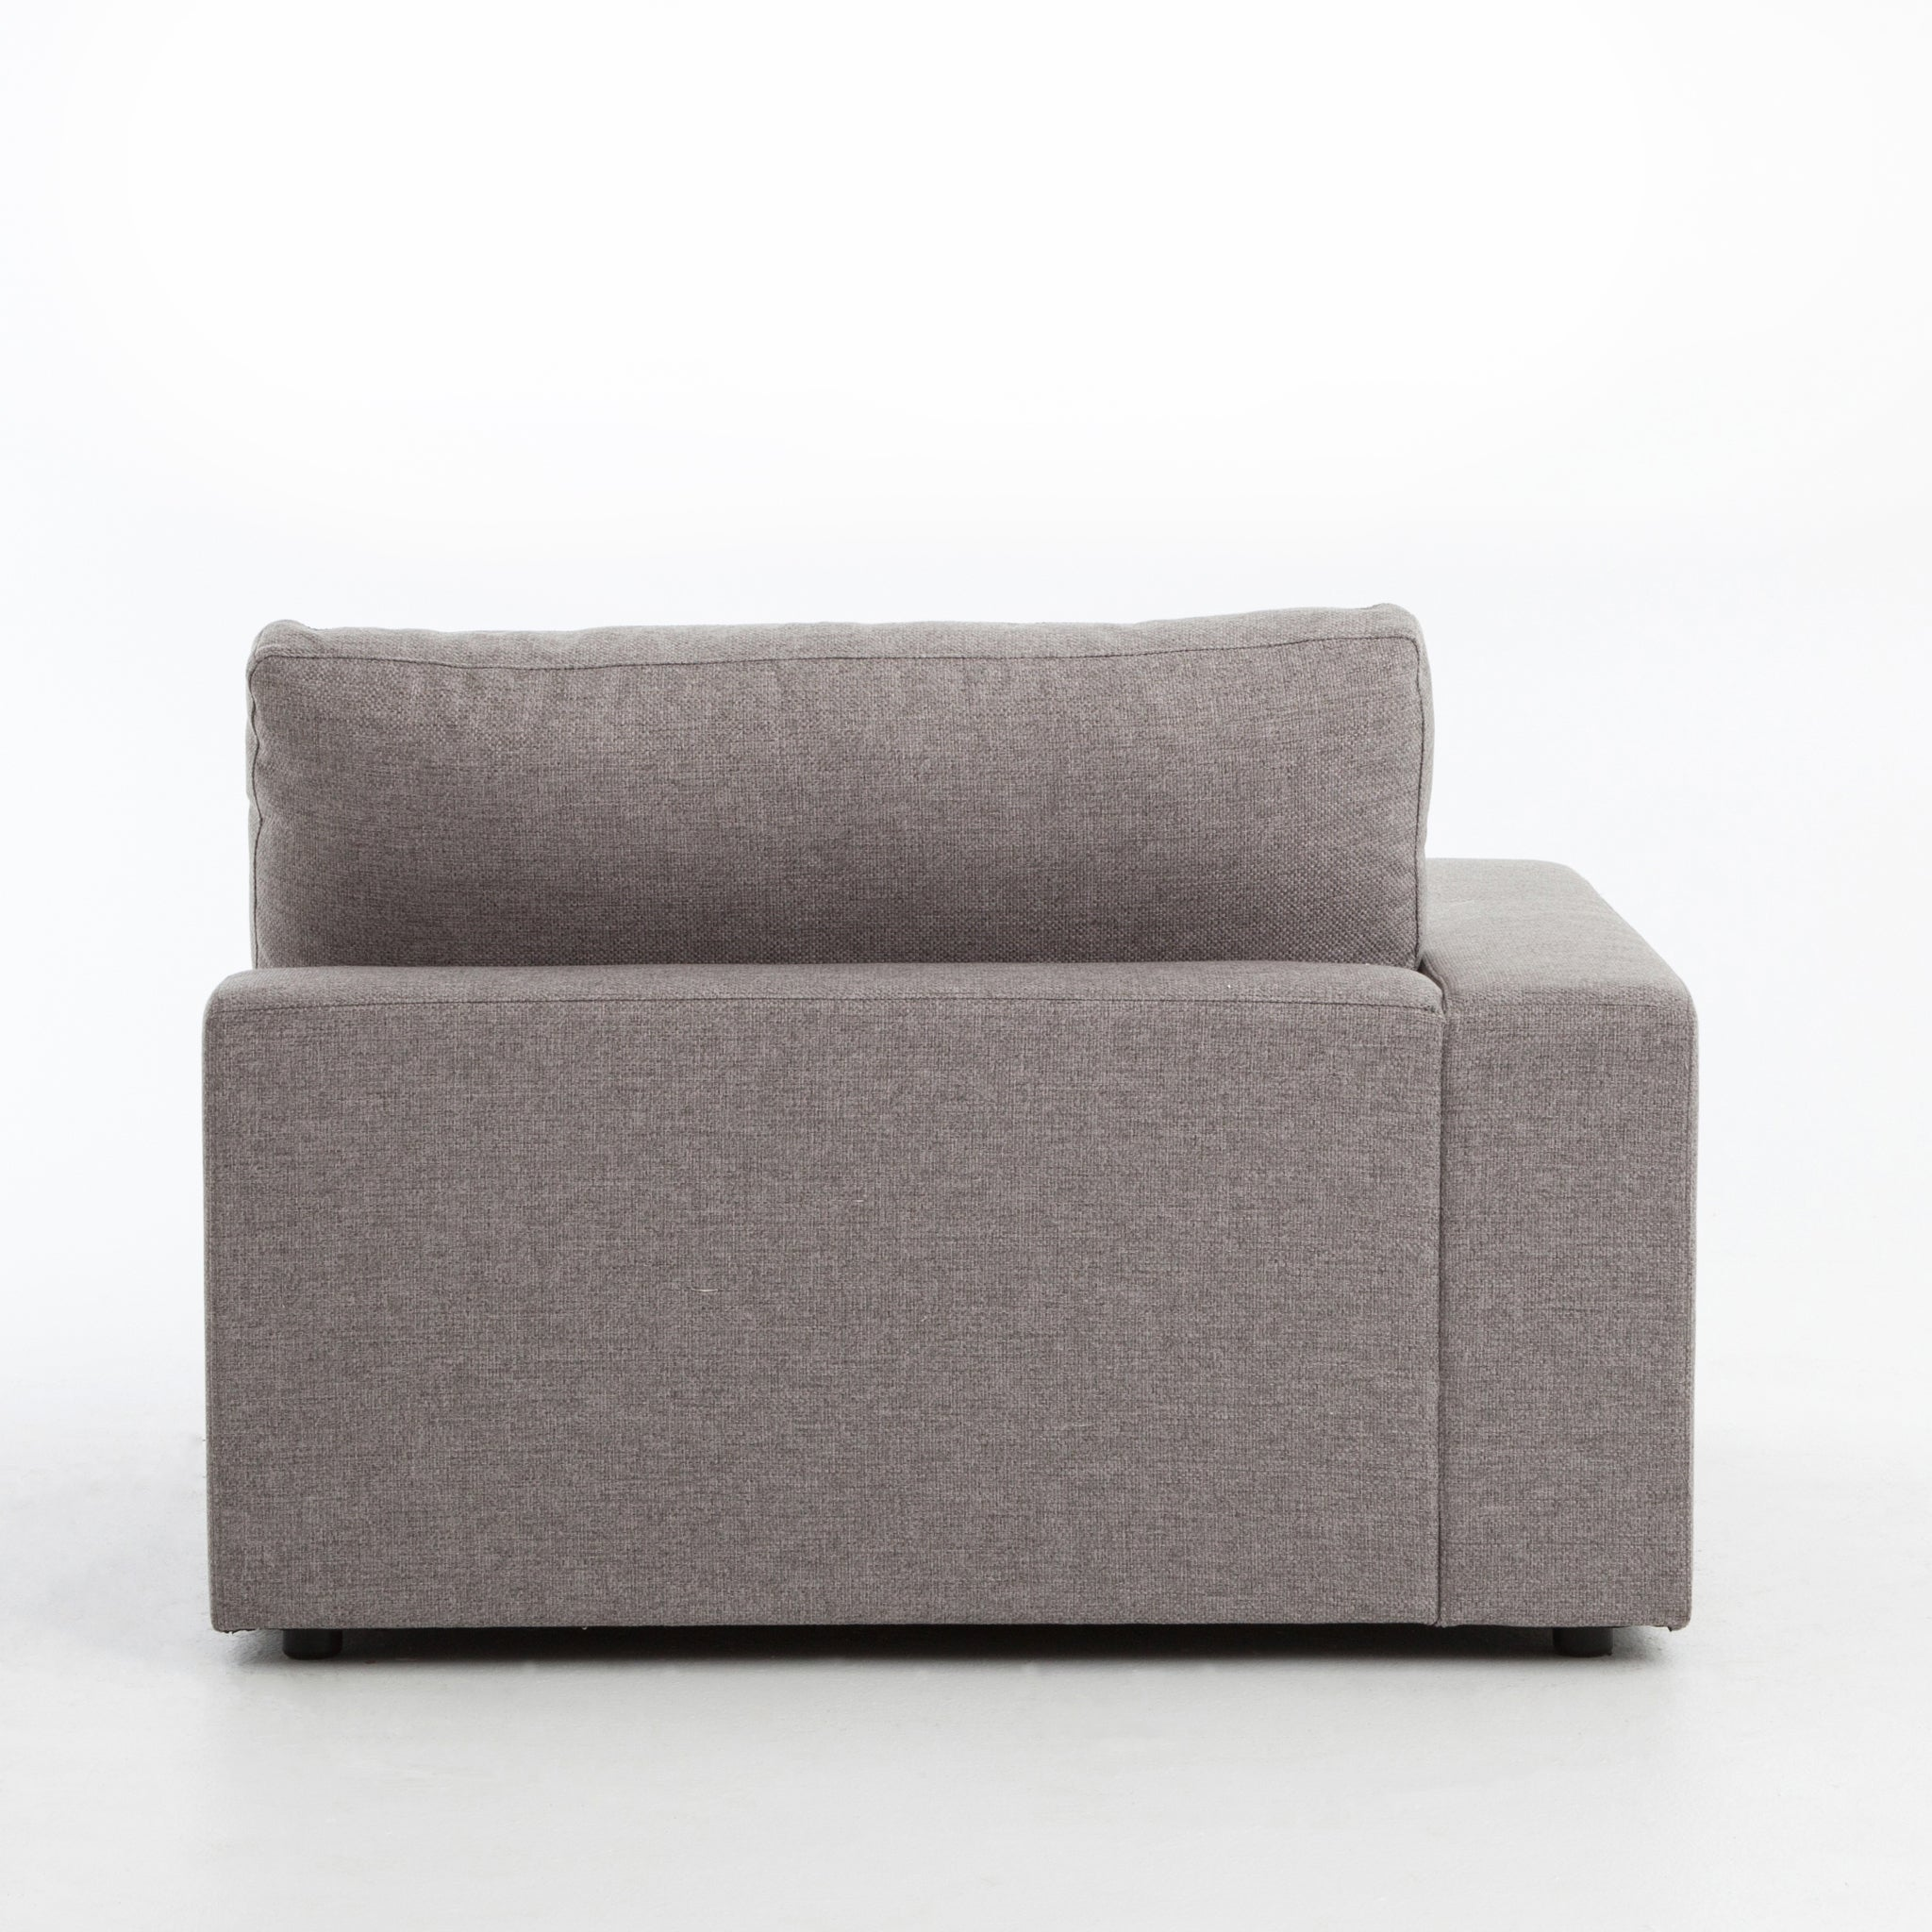 Bloor Sectional Raf-Chess Pewter